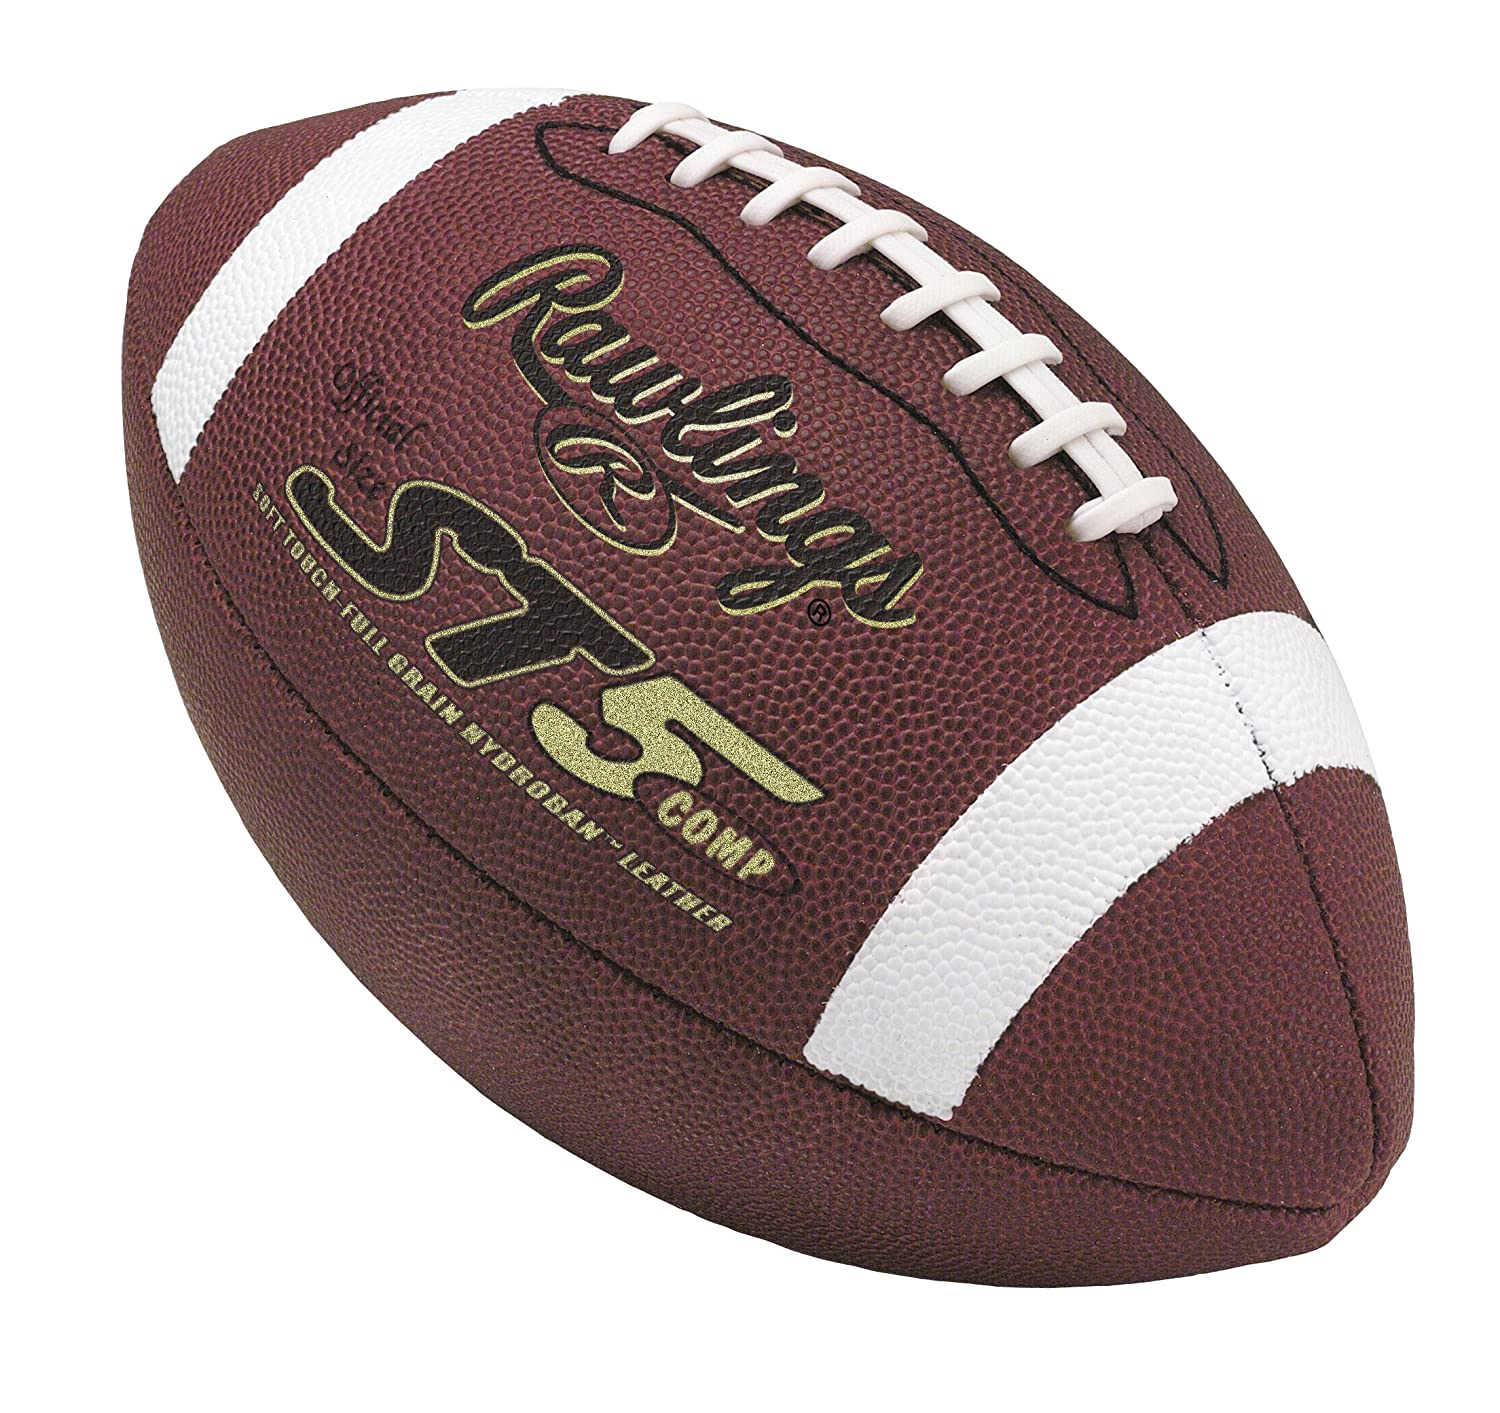 Rawlings Soft Touch Composite Official Size Game Football